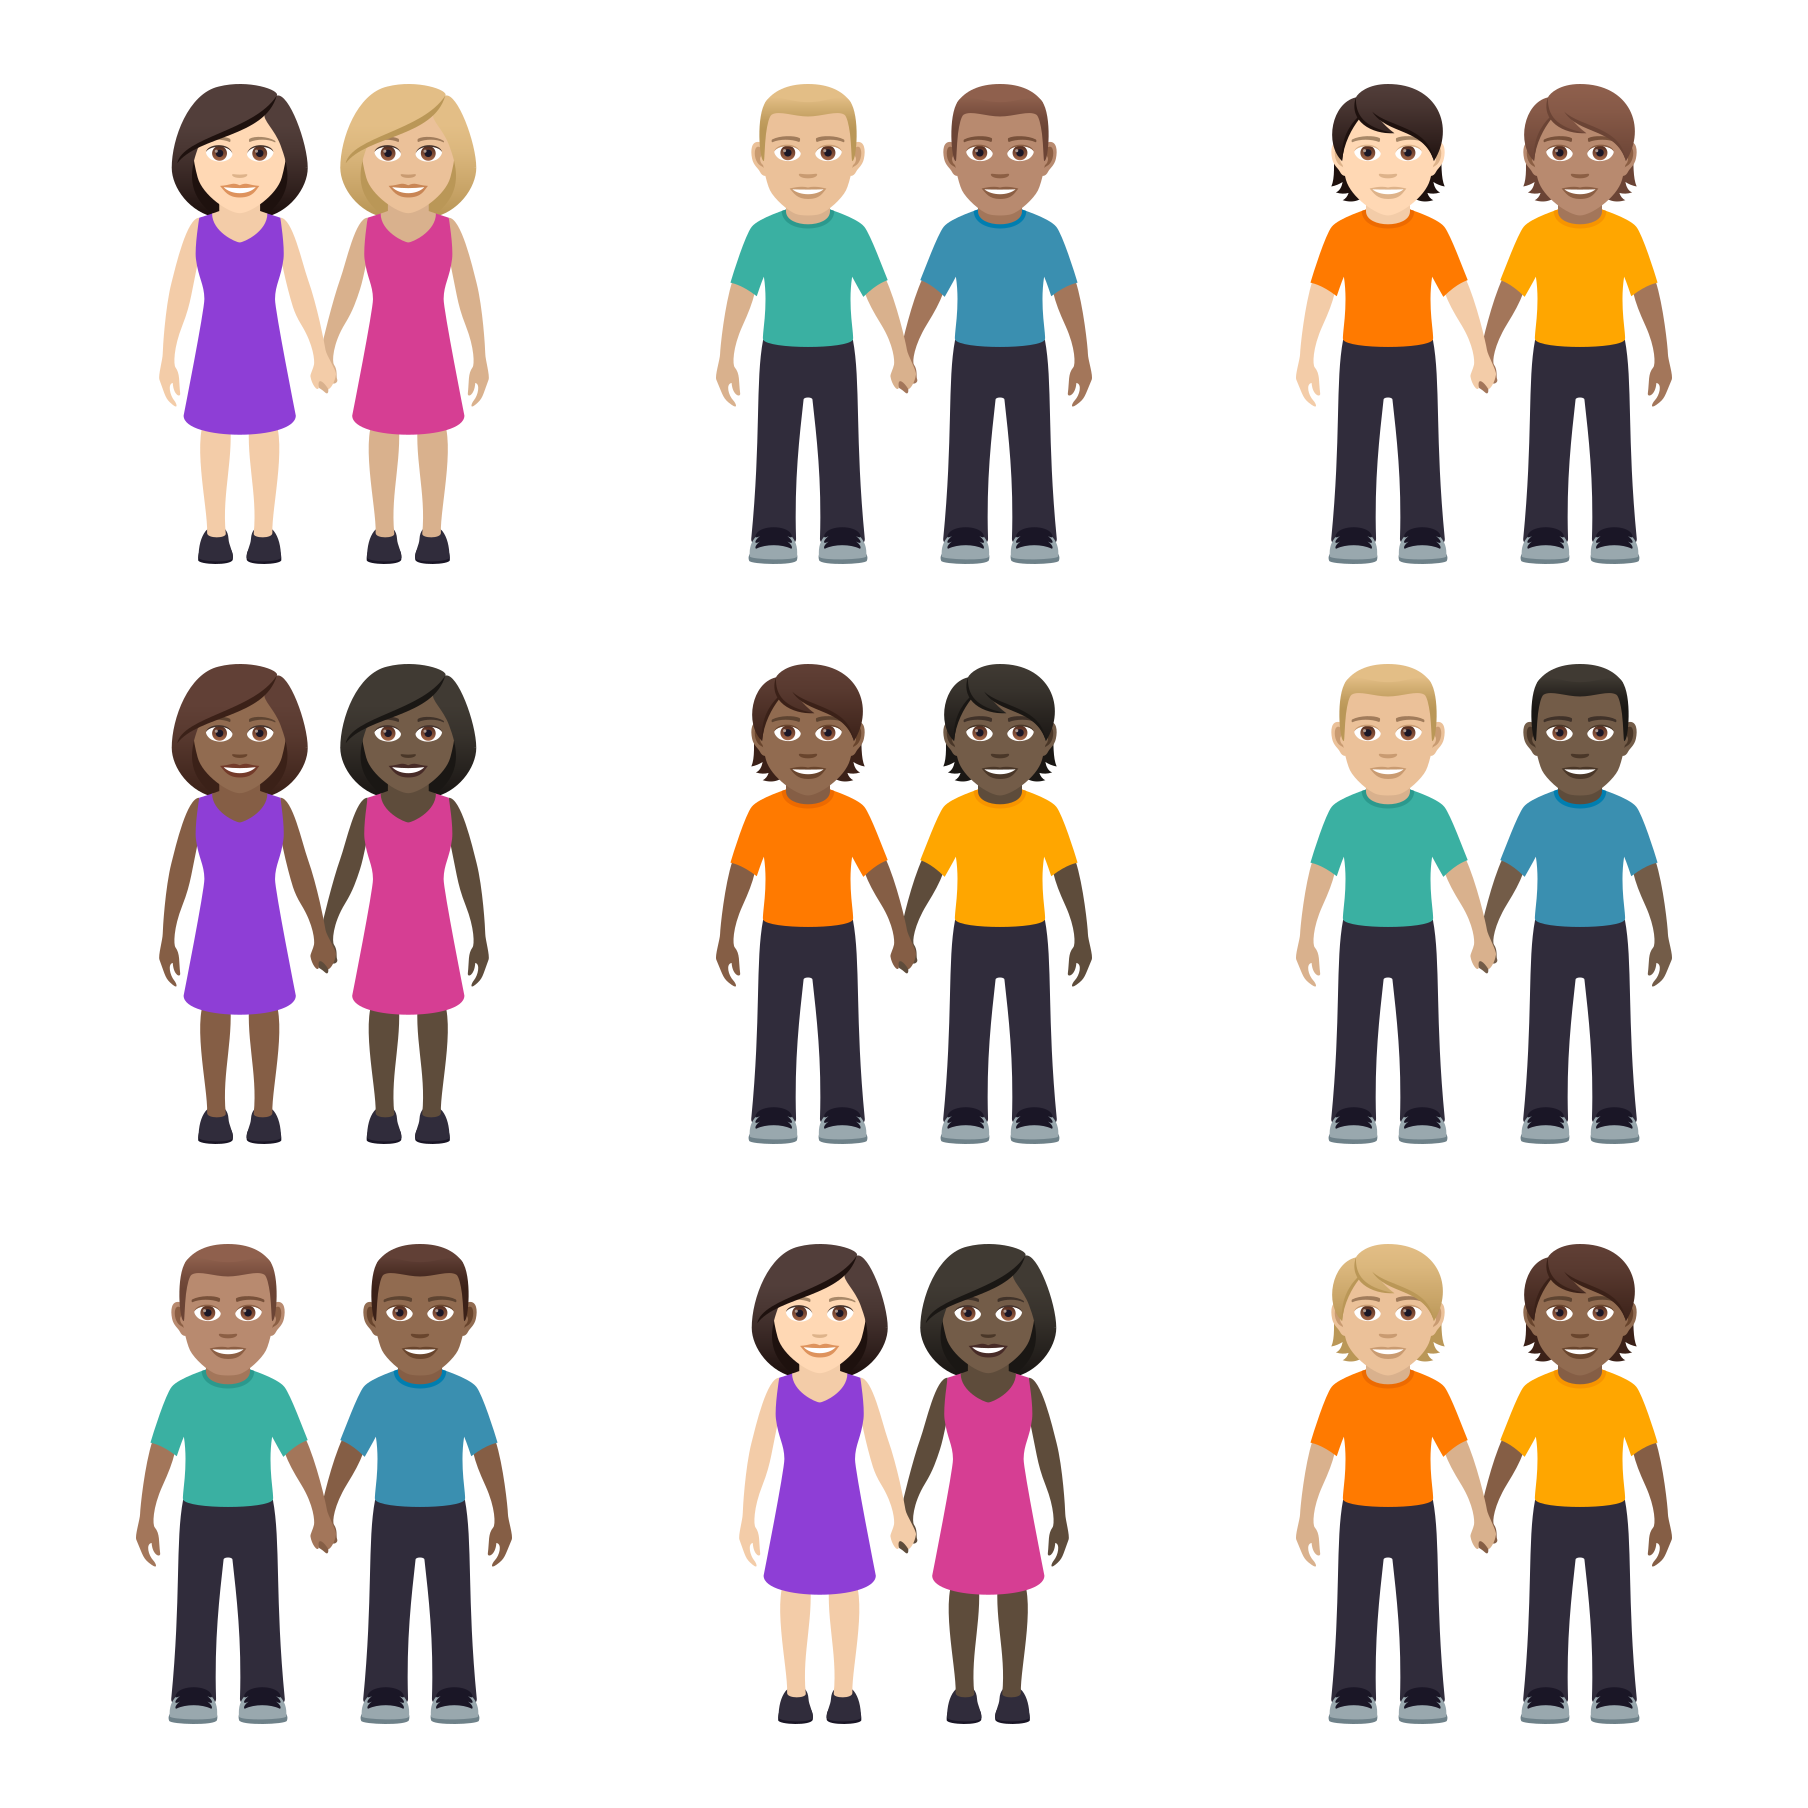 Emojipedia-JoyPixels-5.5-People-Holding-Hands-Selection